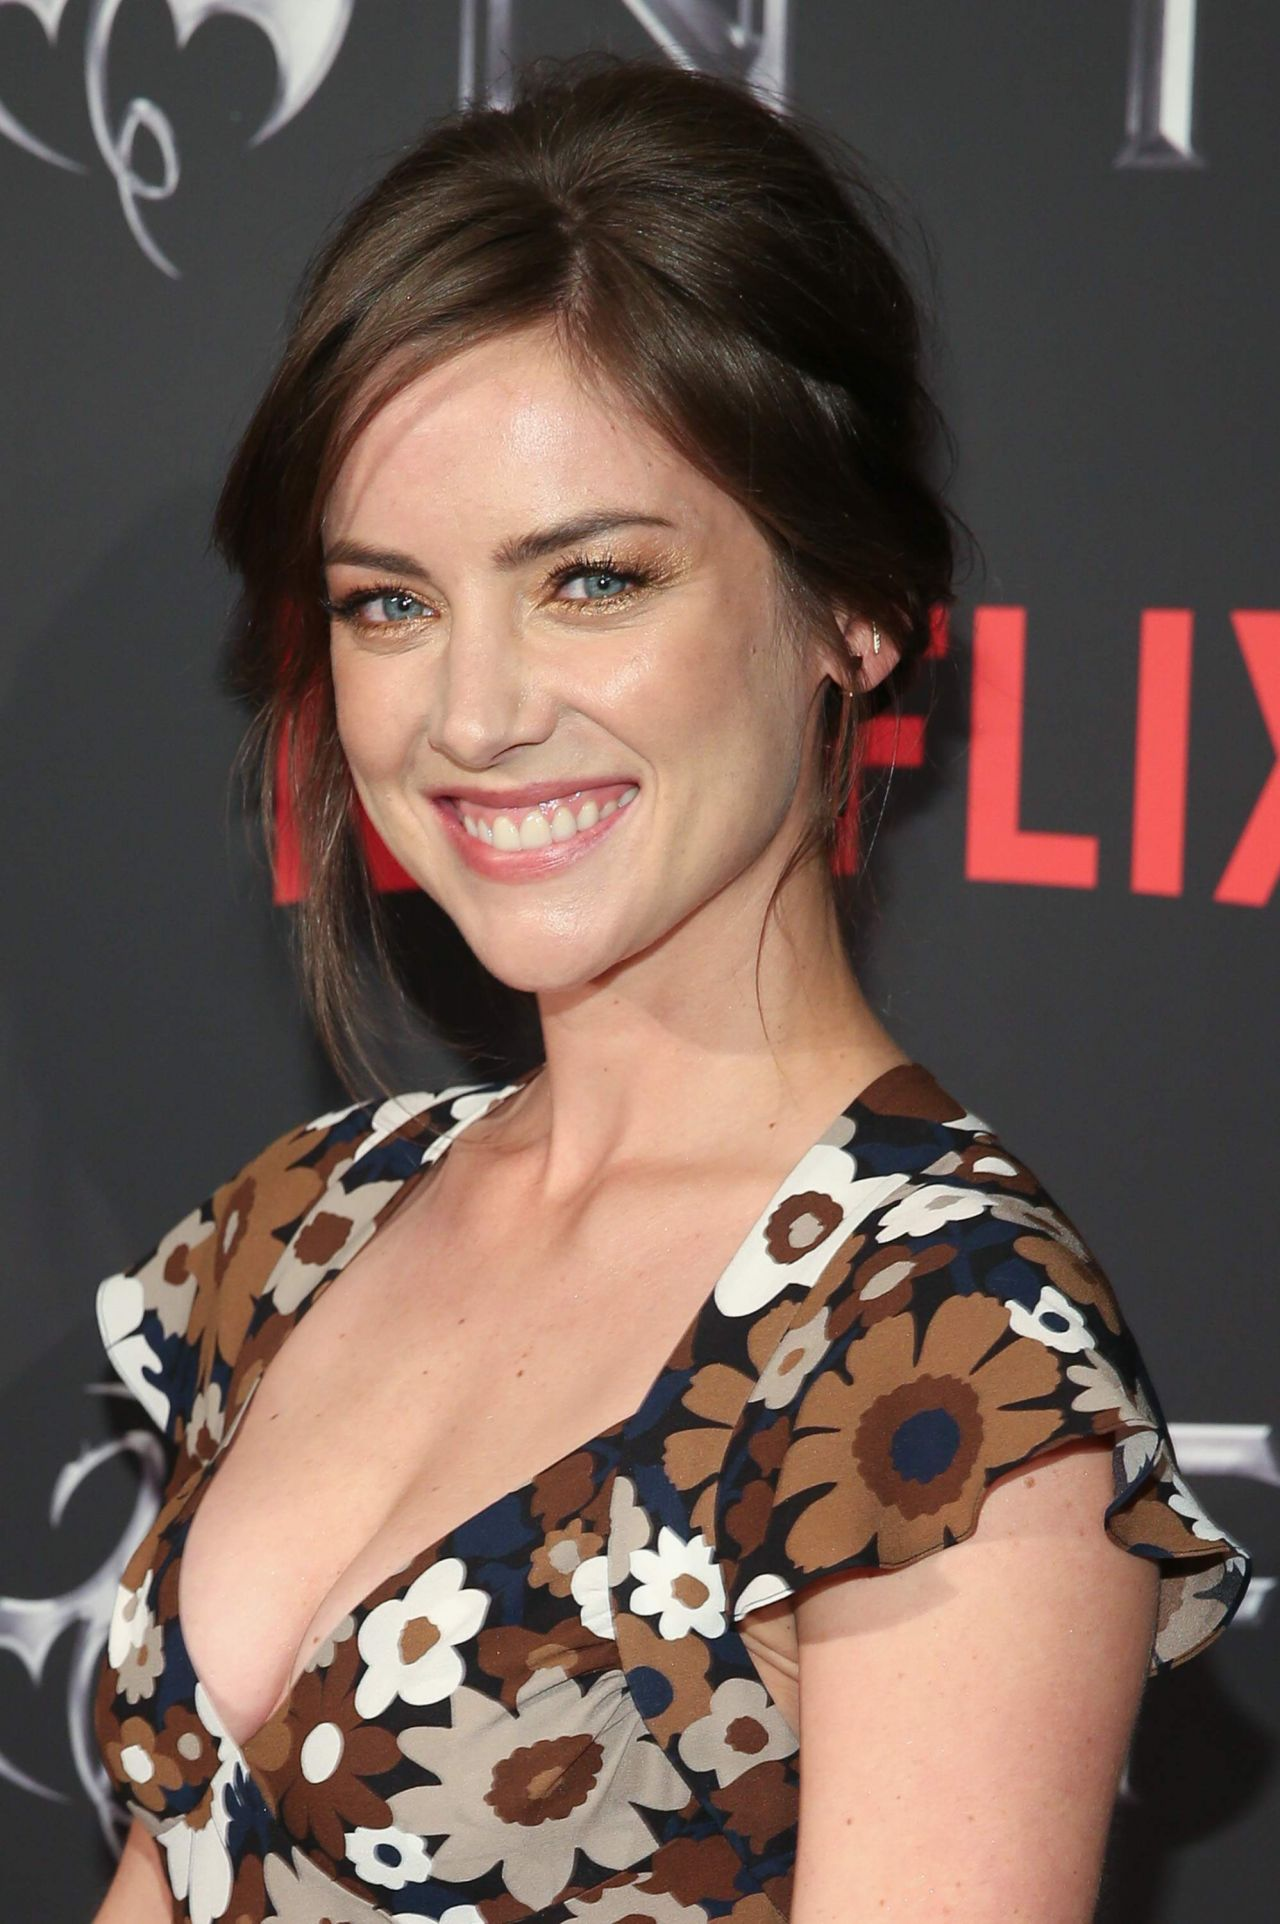 Jessica Stroup naked (39 photos) Porno, YouTube, see through